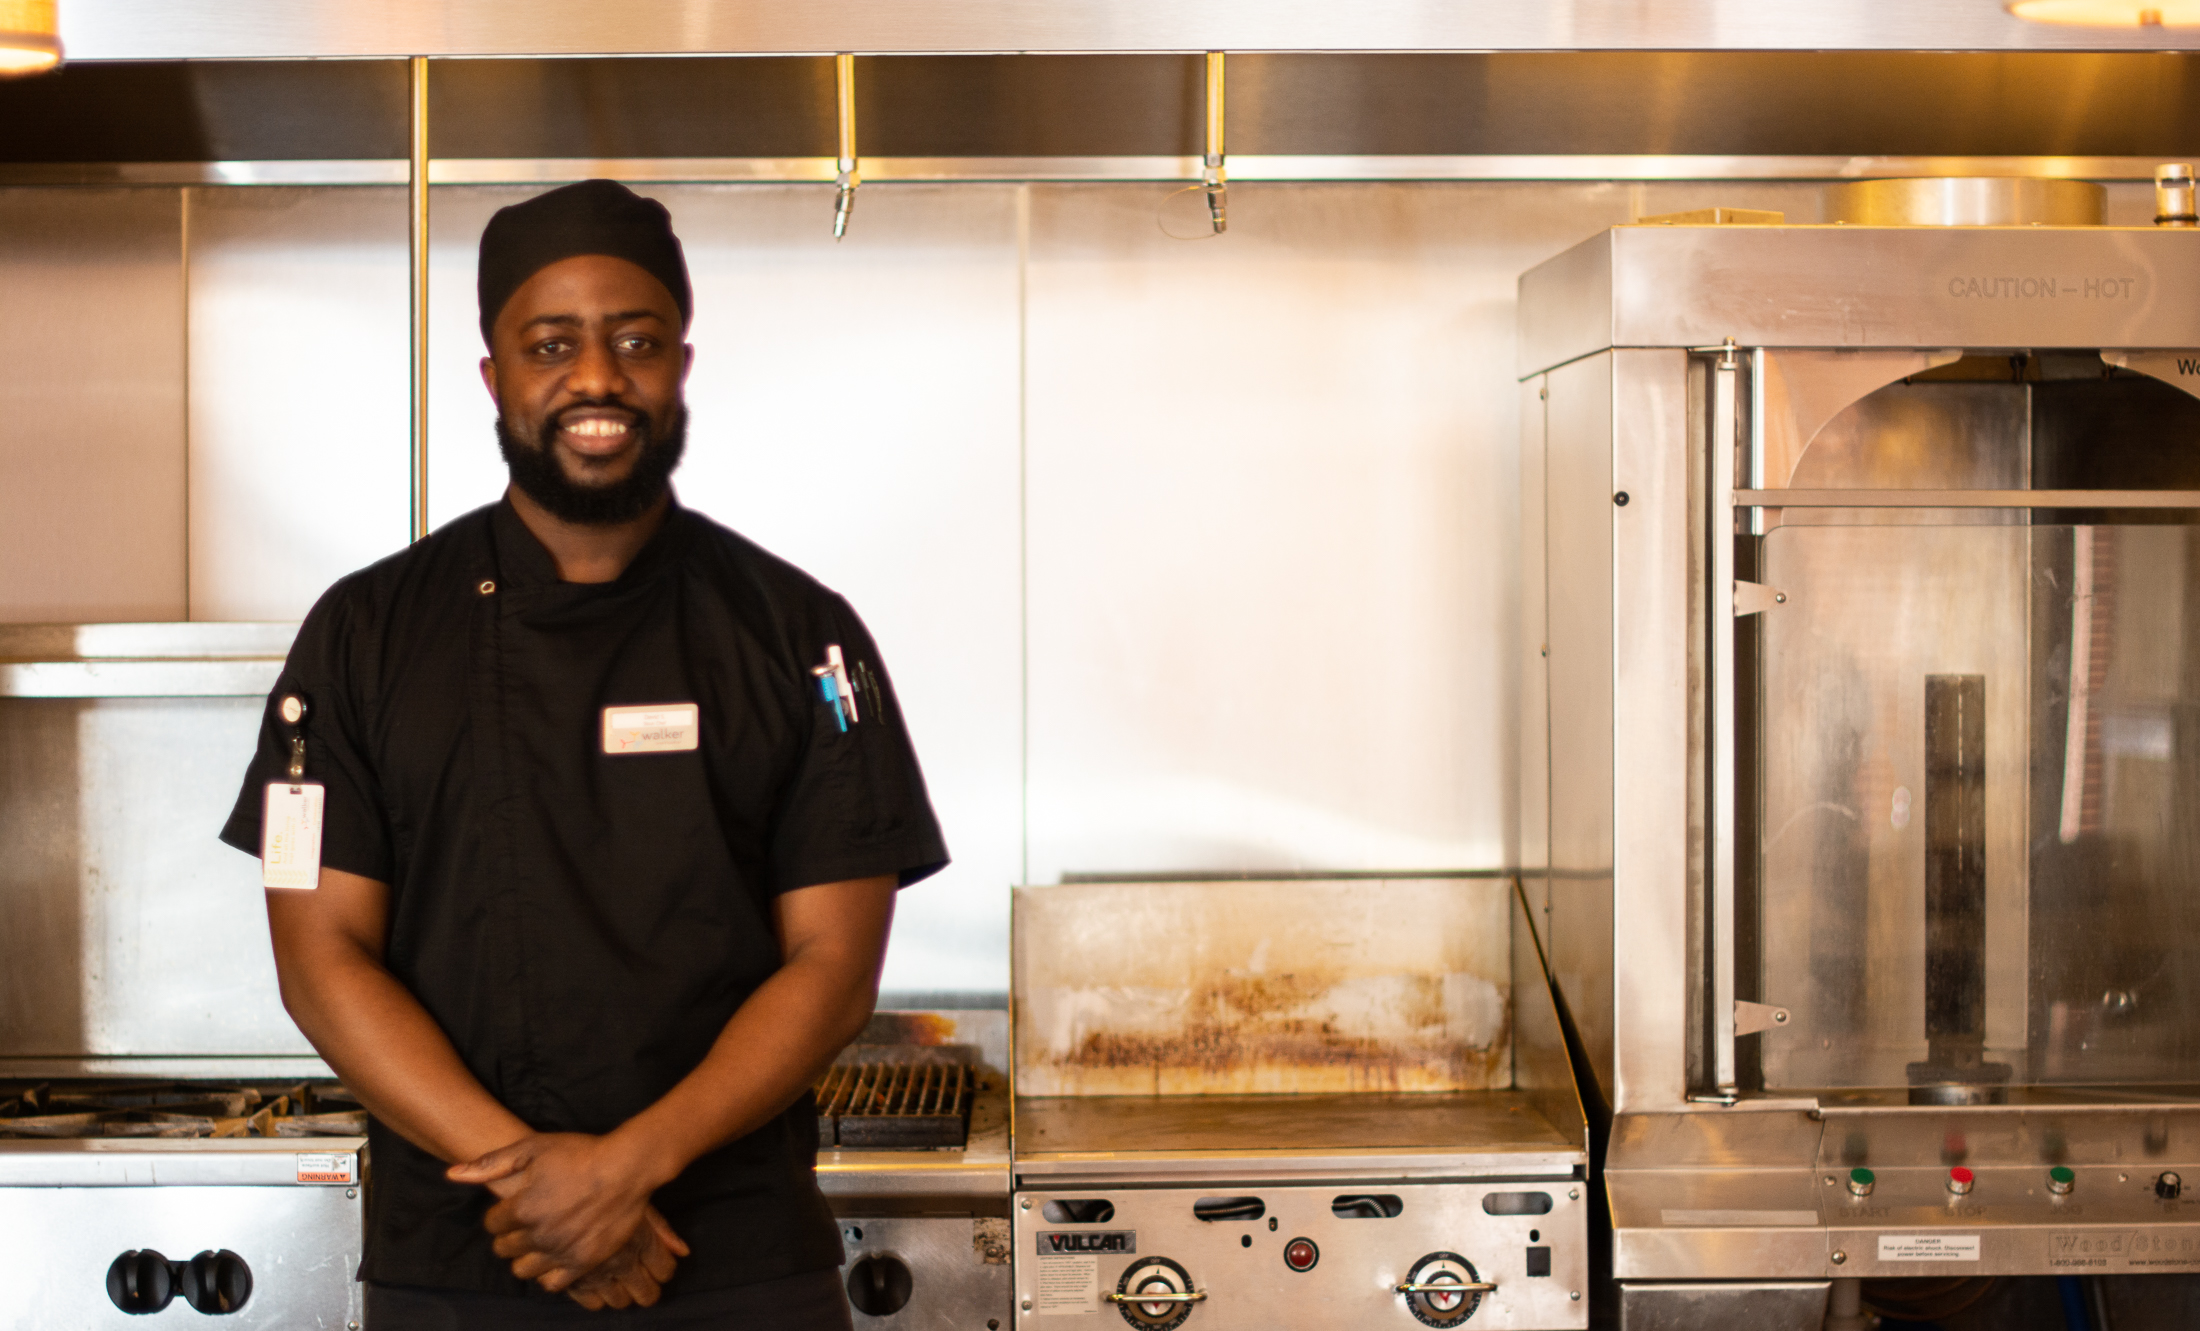 Giving back and growing: Sous chef David Saidu